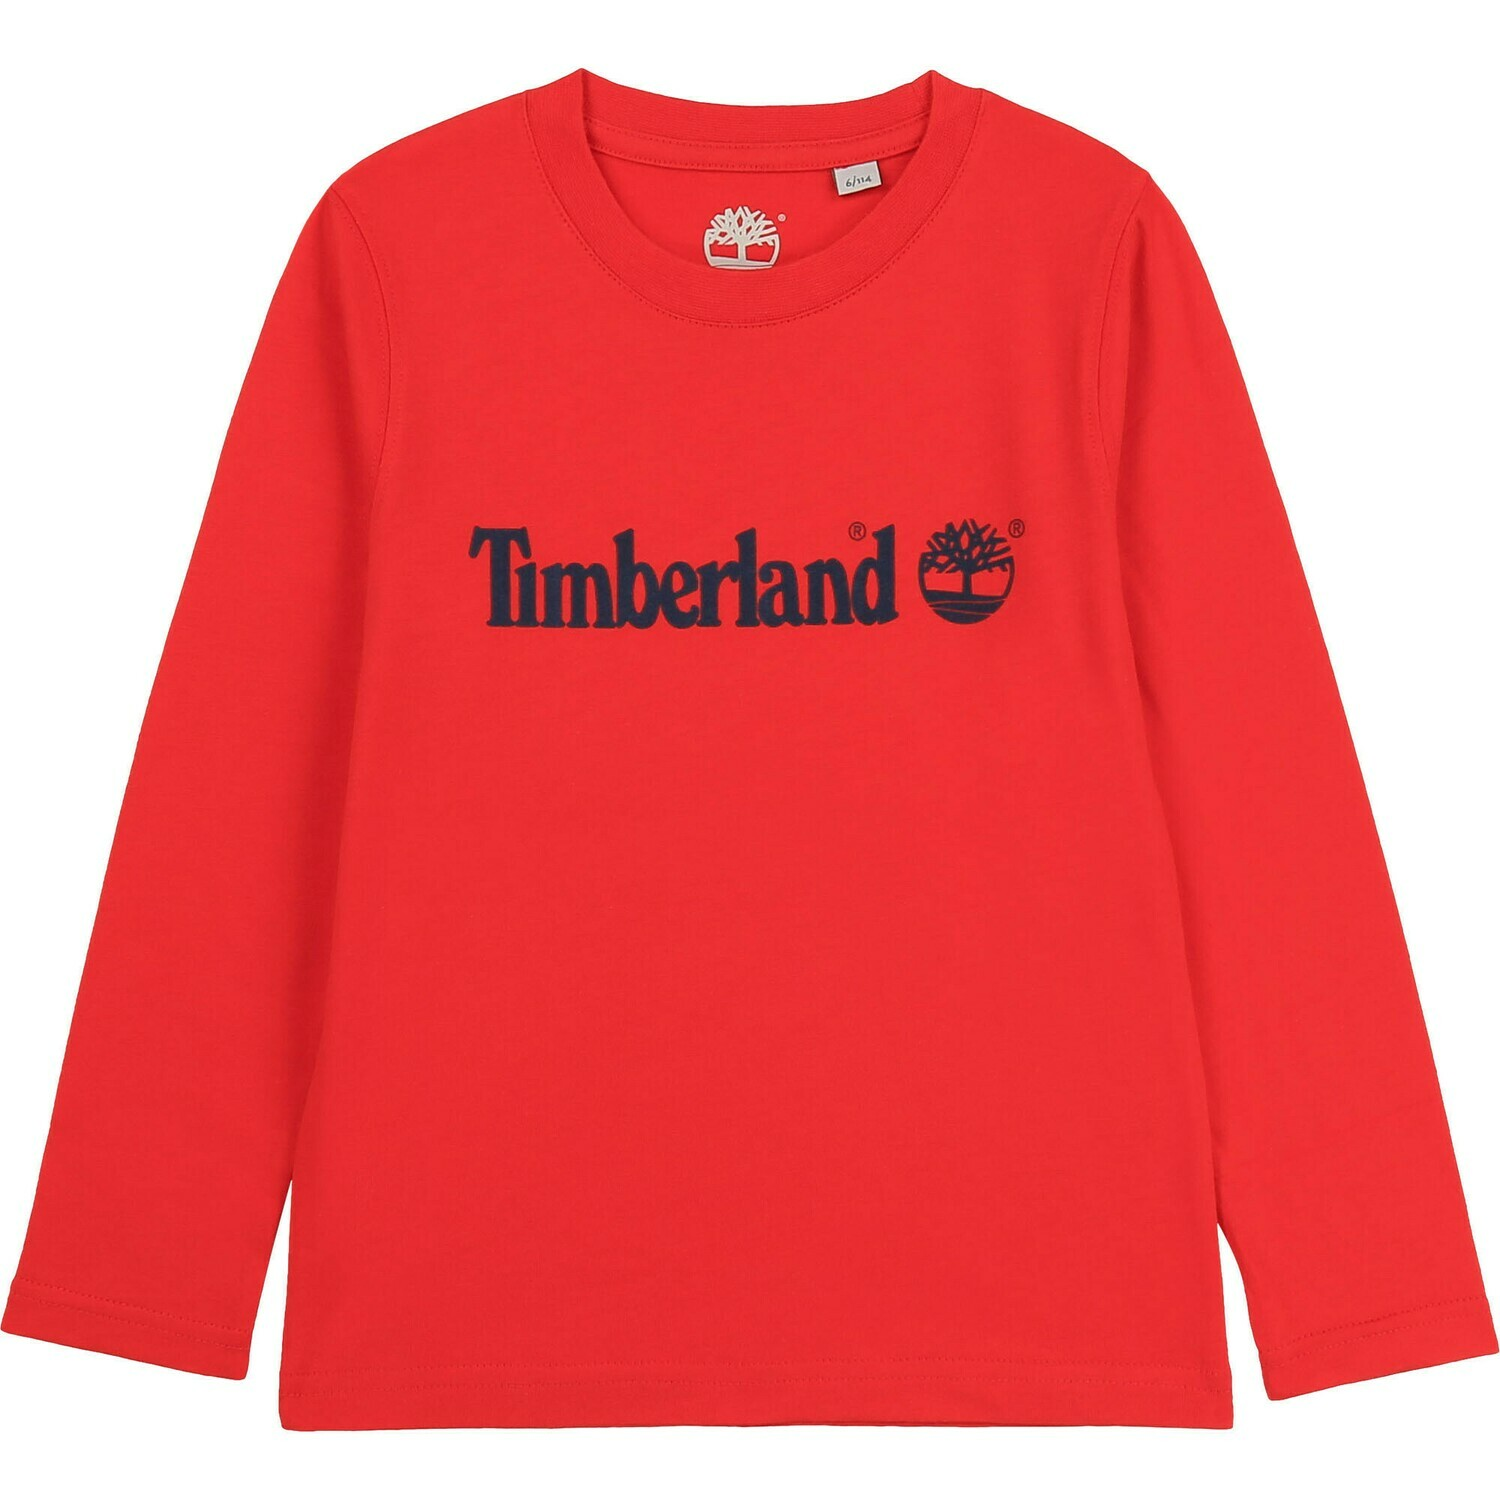 Timberland Boys Red Long Sleeved Top with Logo